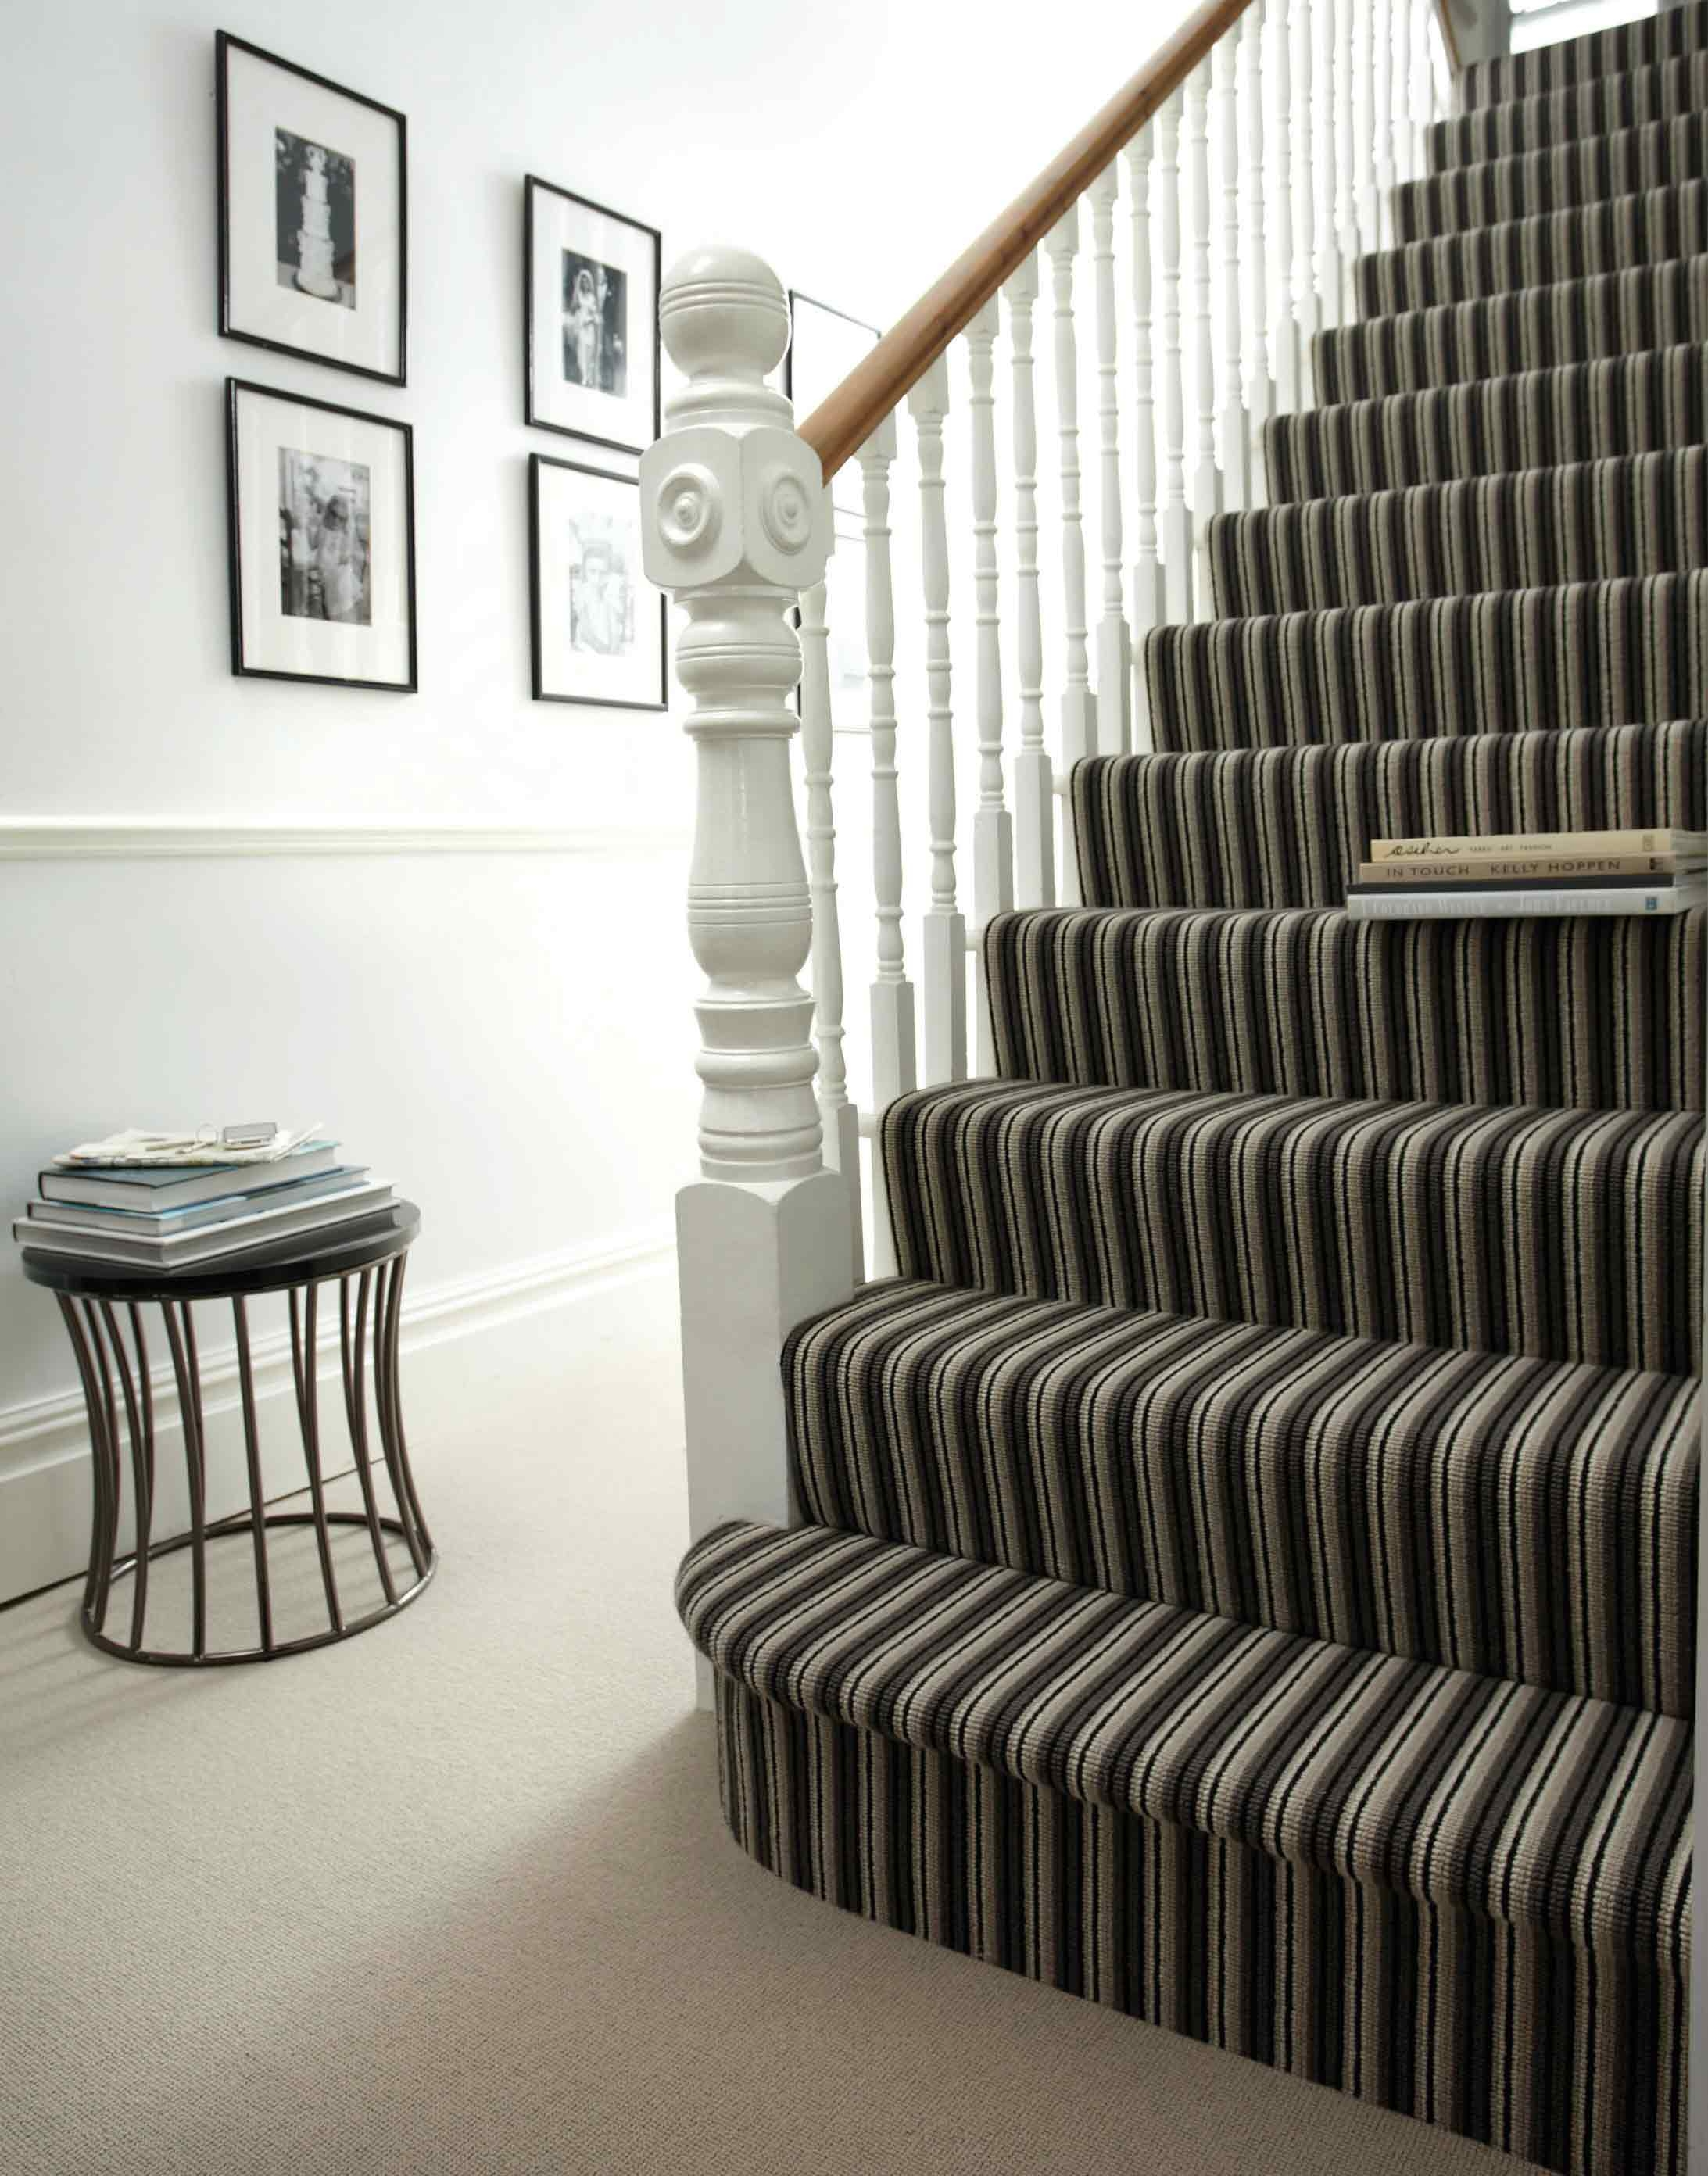 Key Factors Which Make A Carpet Ideal For Stair Installations | Best Way To Carpet Stairs | Hardwood | Carpet Cleaning | Install | Wooden Stairs | Stair Runner